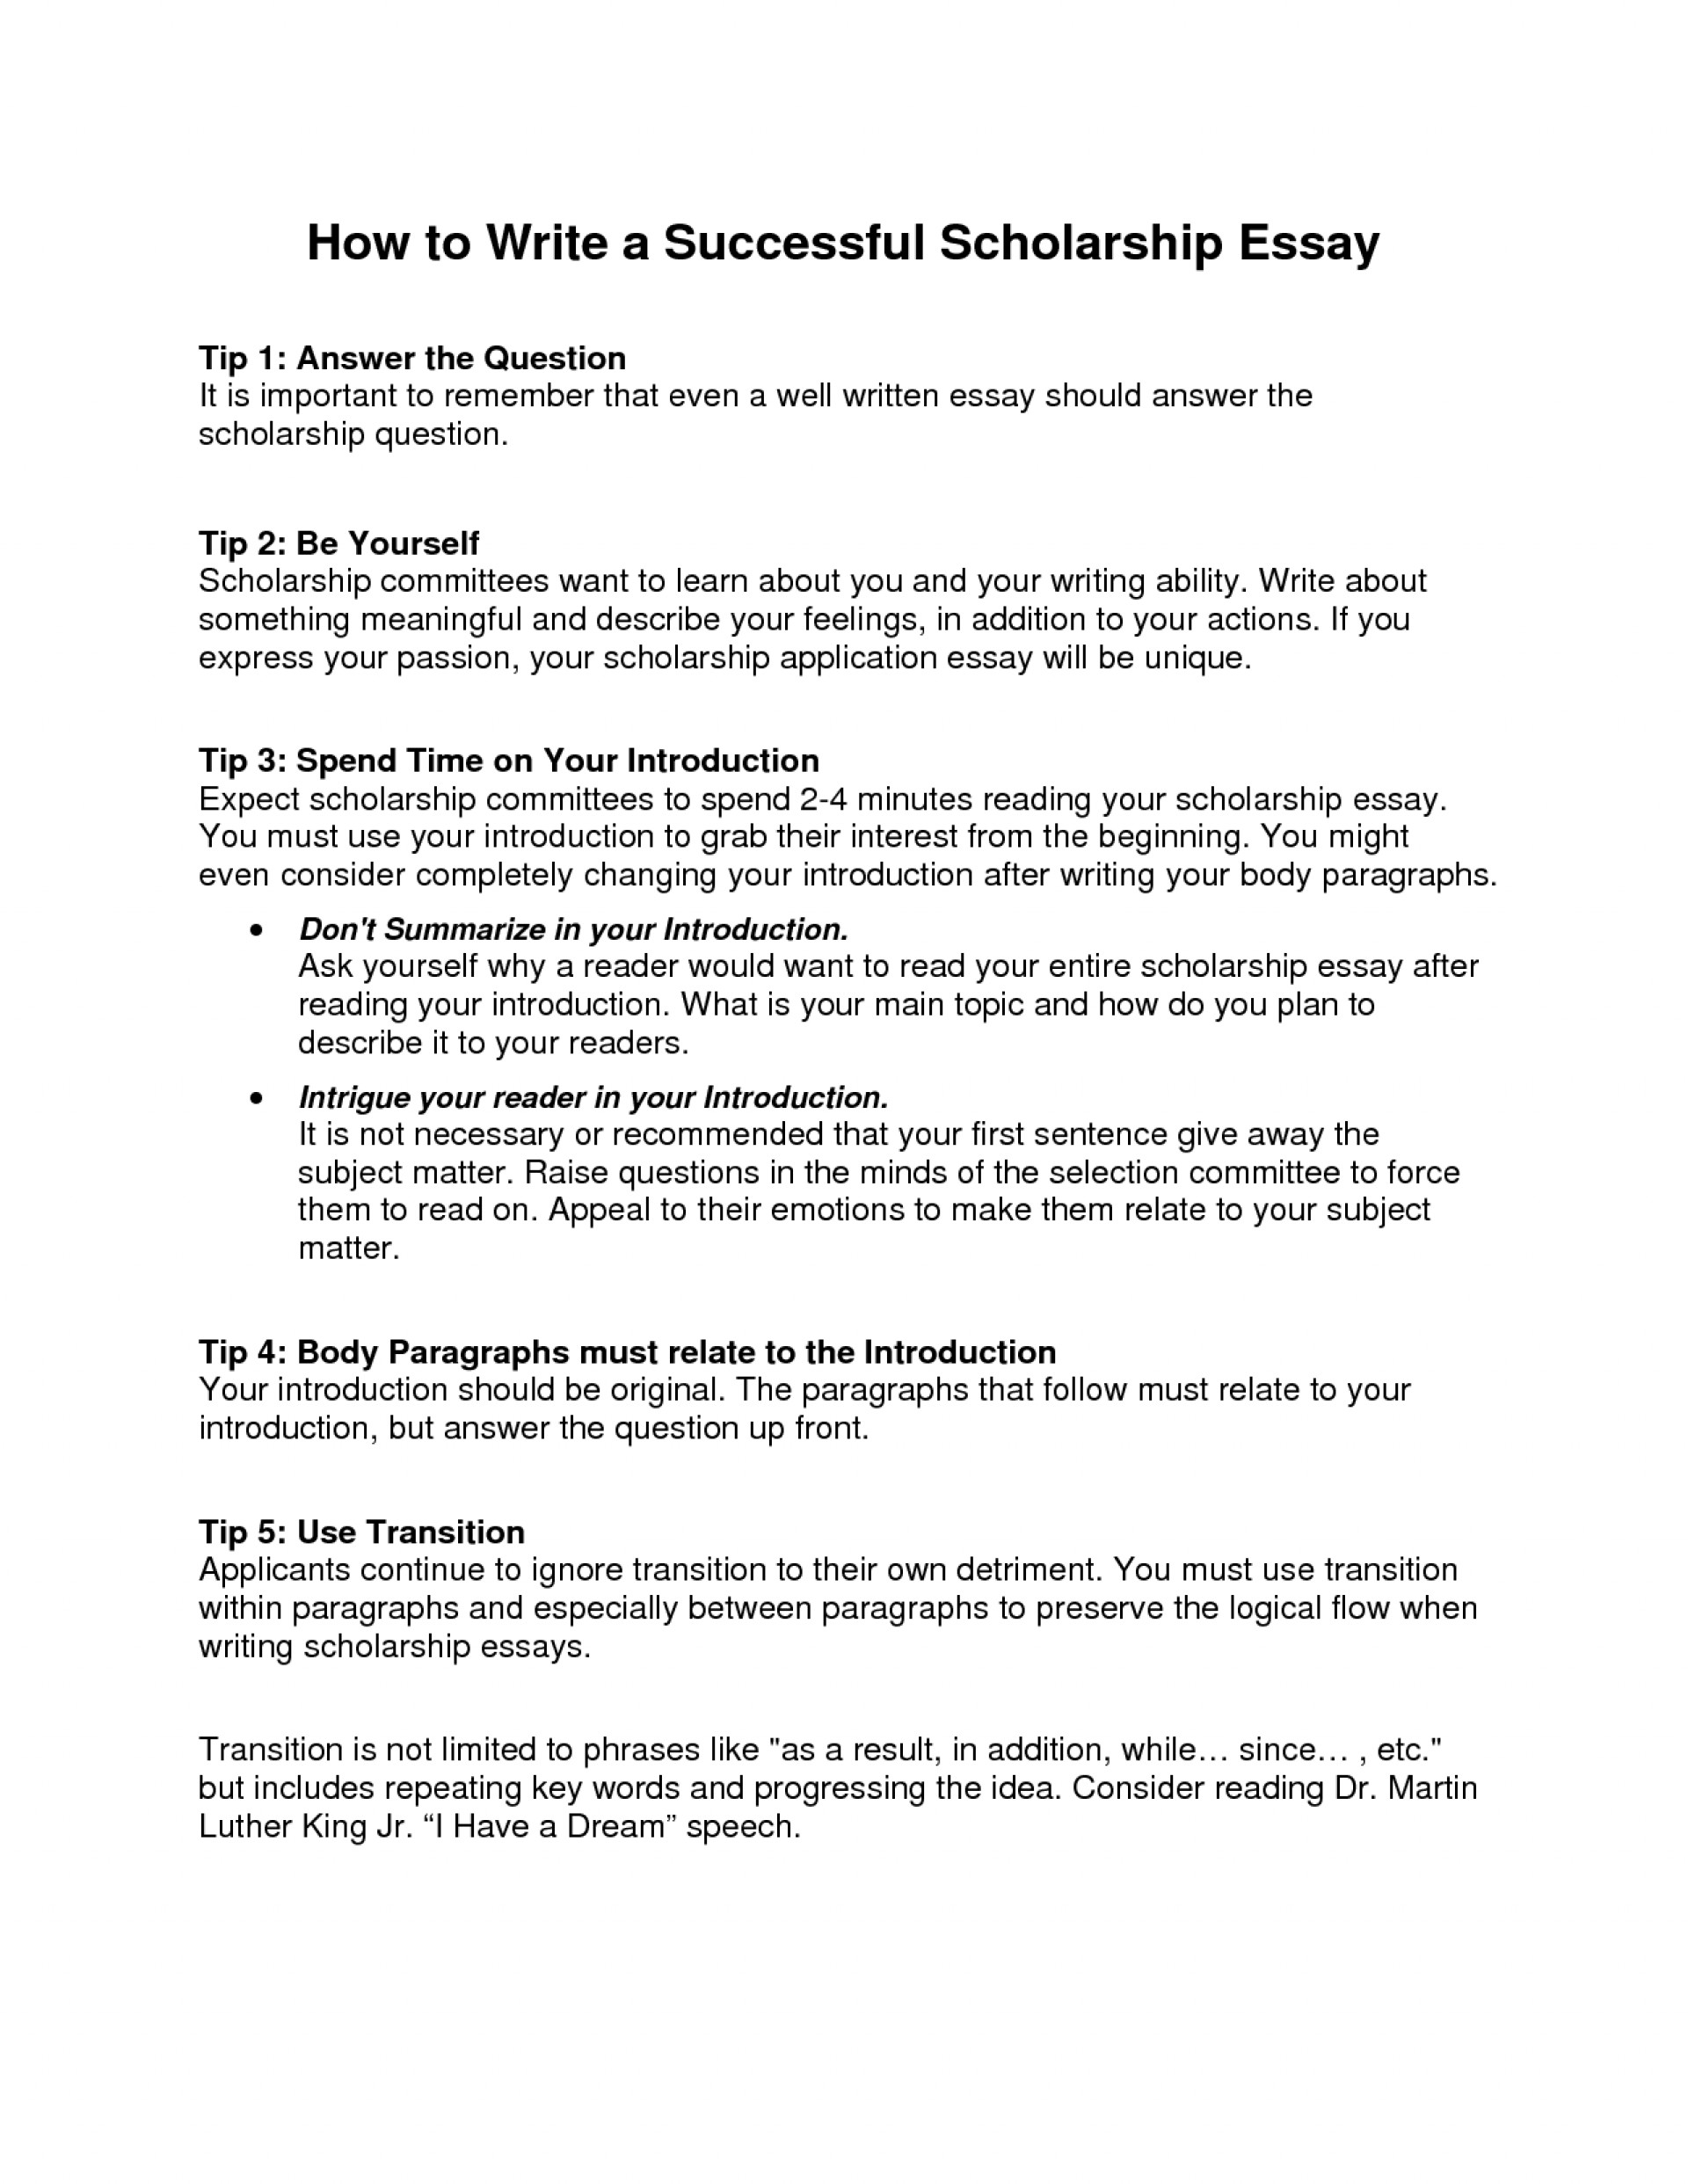 007 How To Write And Essay Example Unique An Conclusion University Level Outline For College Placement Test 1920